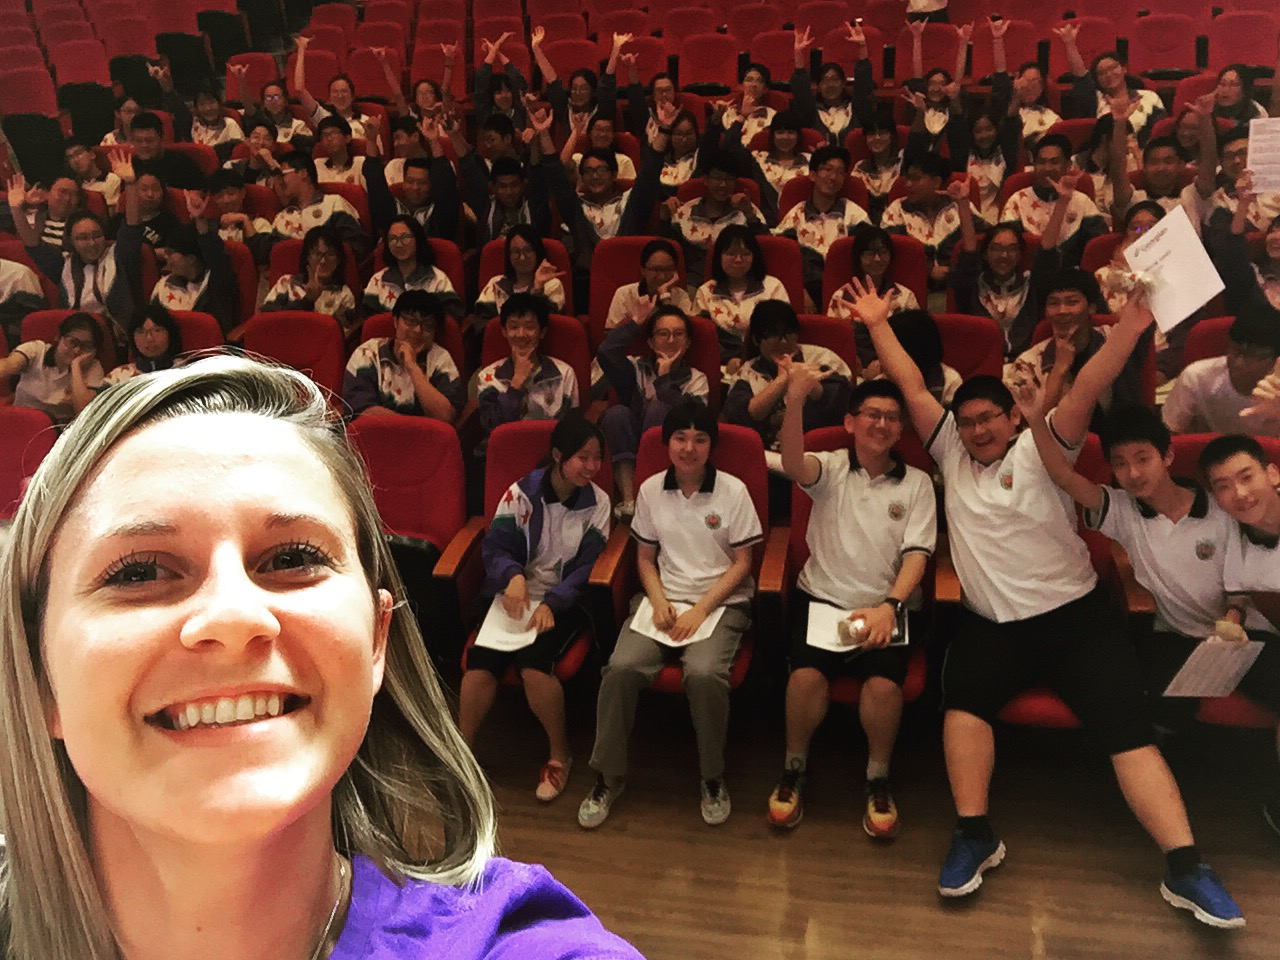 Melissa standing on a stage, taking a selfie, with school kids behind her, at a school in China